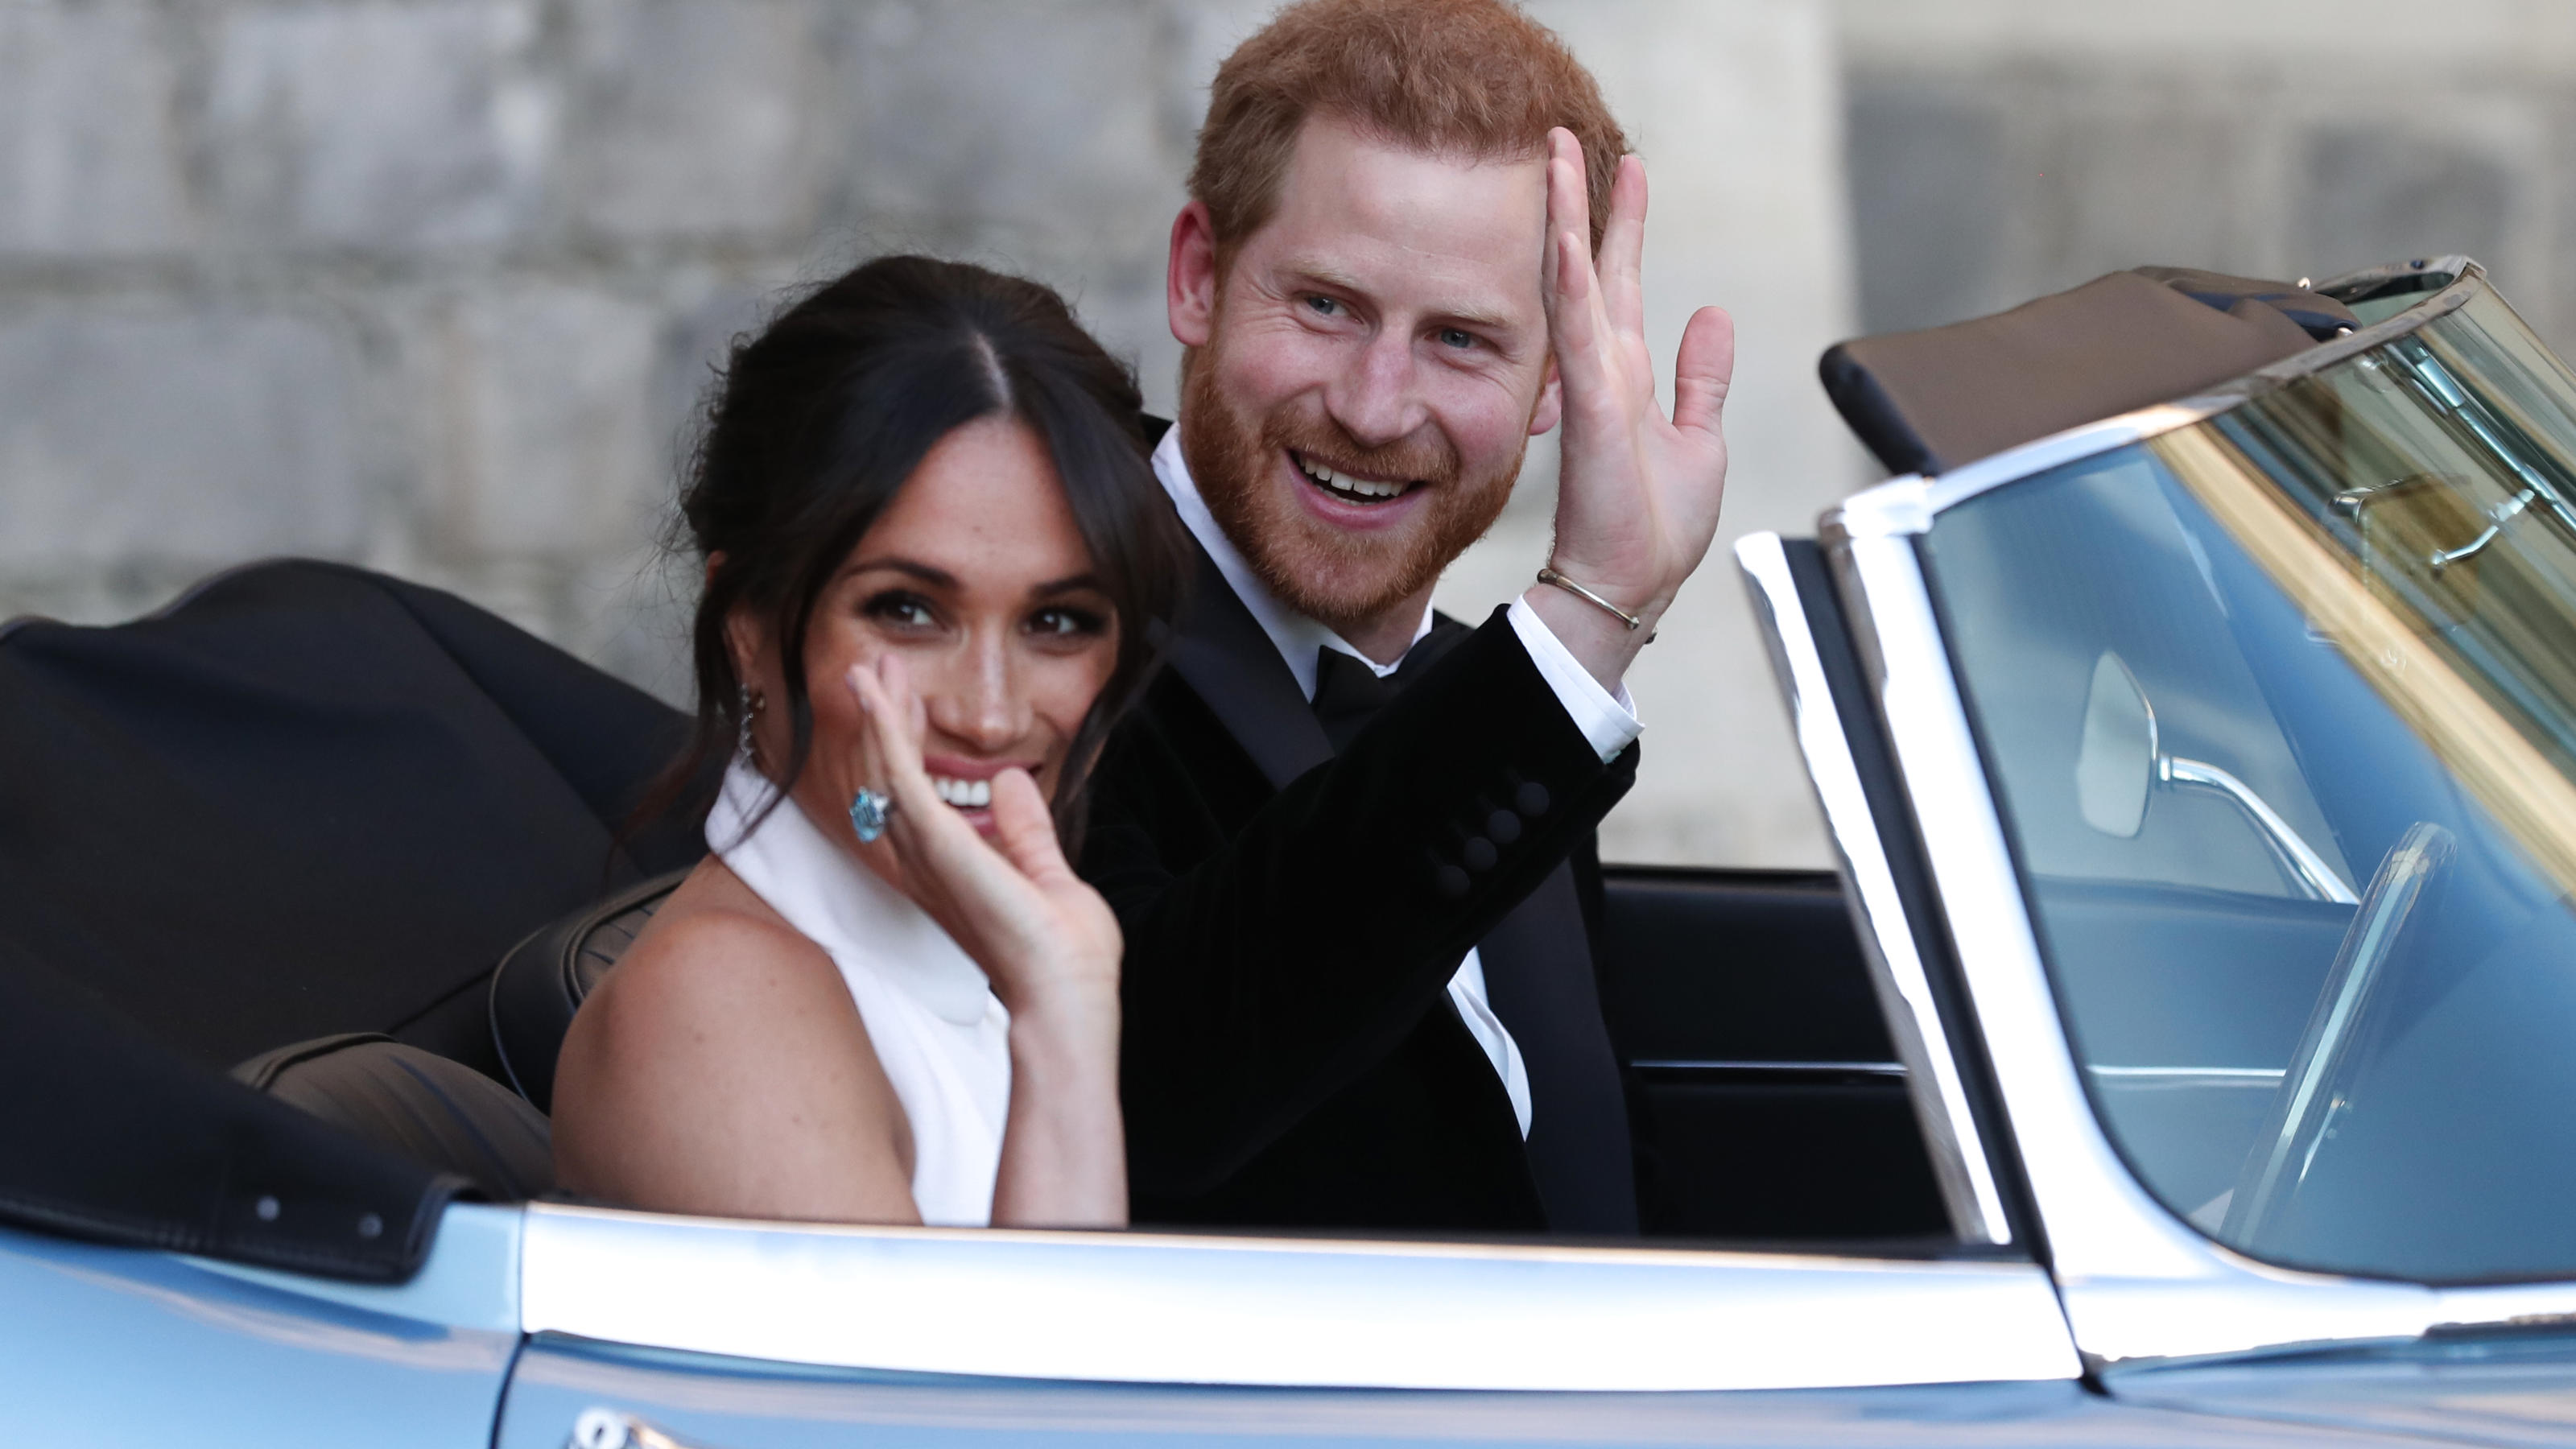 WINDSOR, UNITED KINGDOM - MAY 19: Duchess of Sussex and Prince Harry, Duke of Sussex wave as they leave Windsor Castle after their wedding to attend an evening reception at Frogmore House, hosted by the Prince of Wales on May 19, 2018 in Windsor, Eng